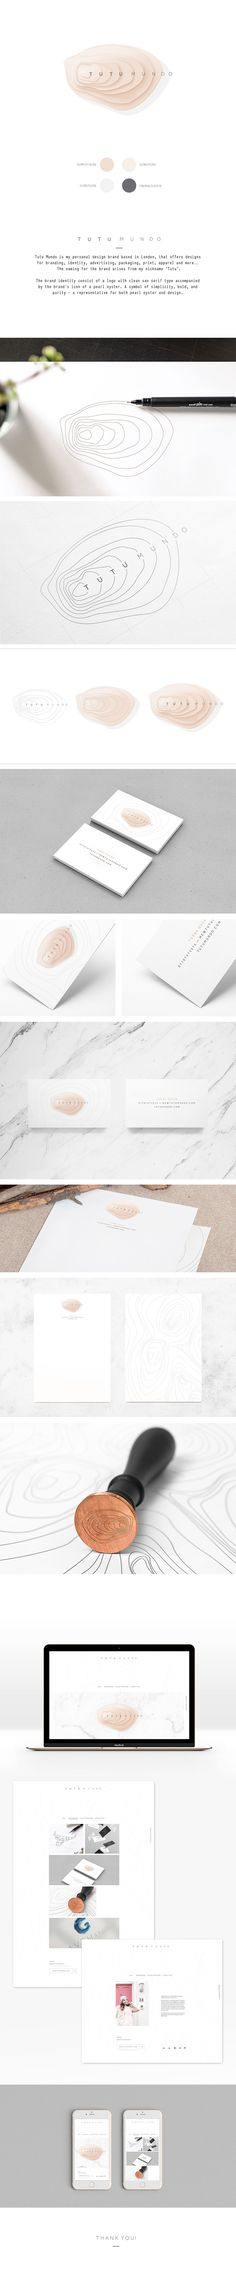 Tugba Ozcan on Behance brand identity